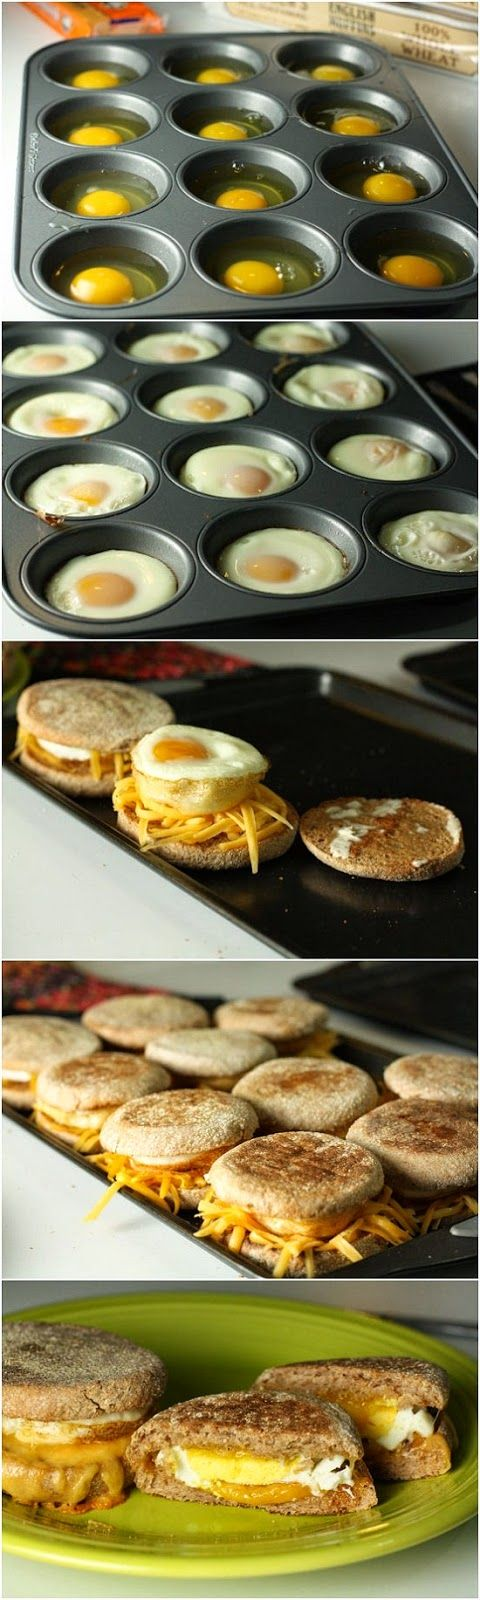 Great, quick breakfast sandwich ideas (I would use Reduced Fat Cheese). These can be frozen and popped into the microwave at the office or when on the run!